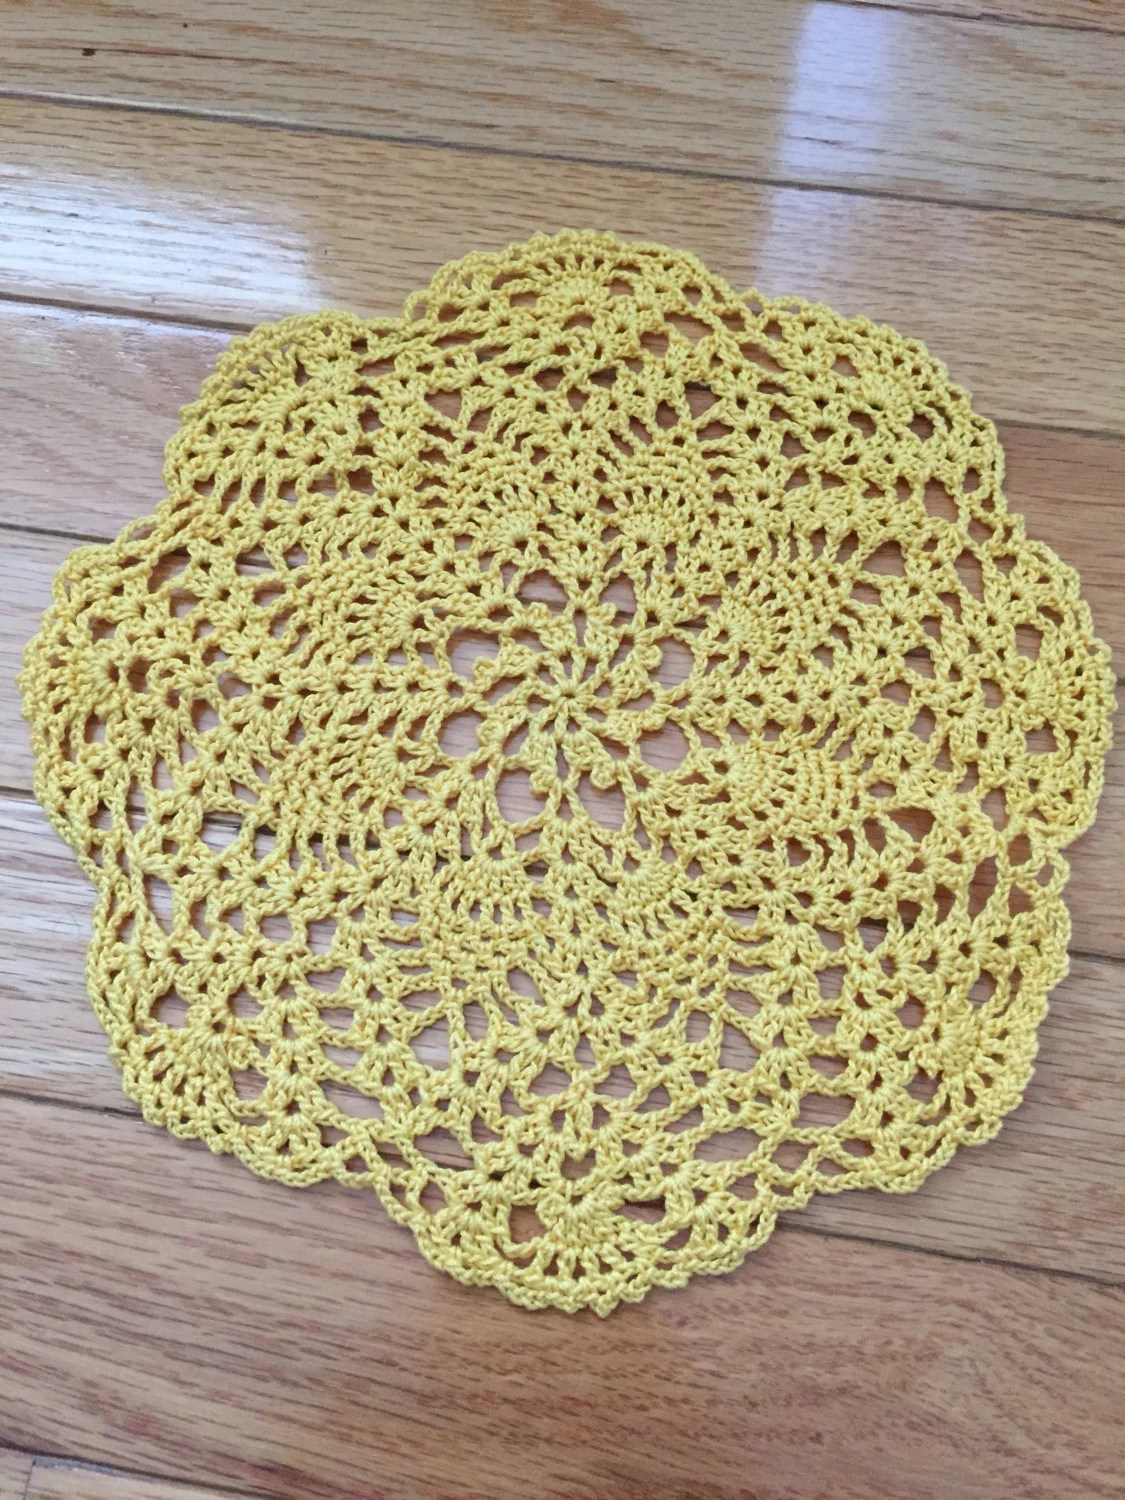 mustard yellow bean bag chair cane dining chairs for sale crochet flowers wool rug / knit floral carpet